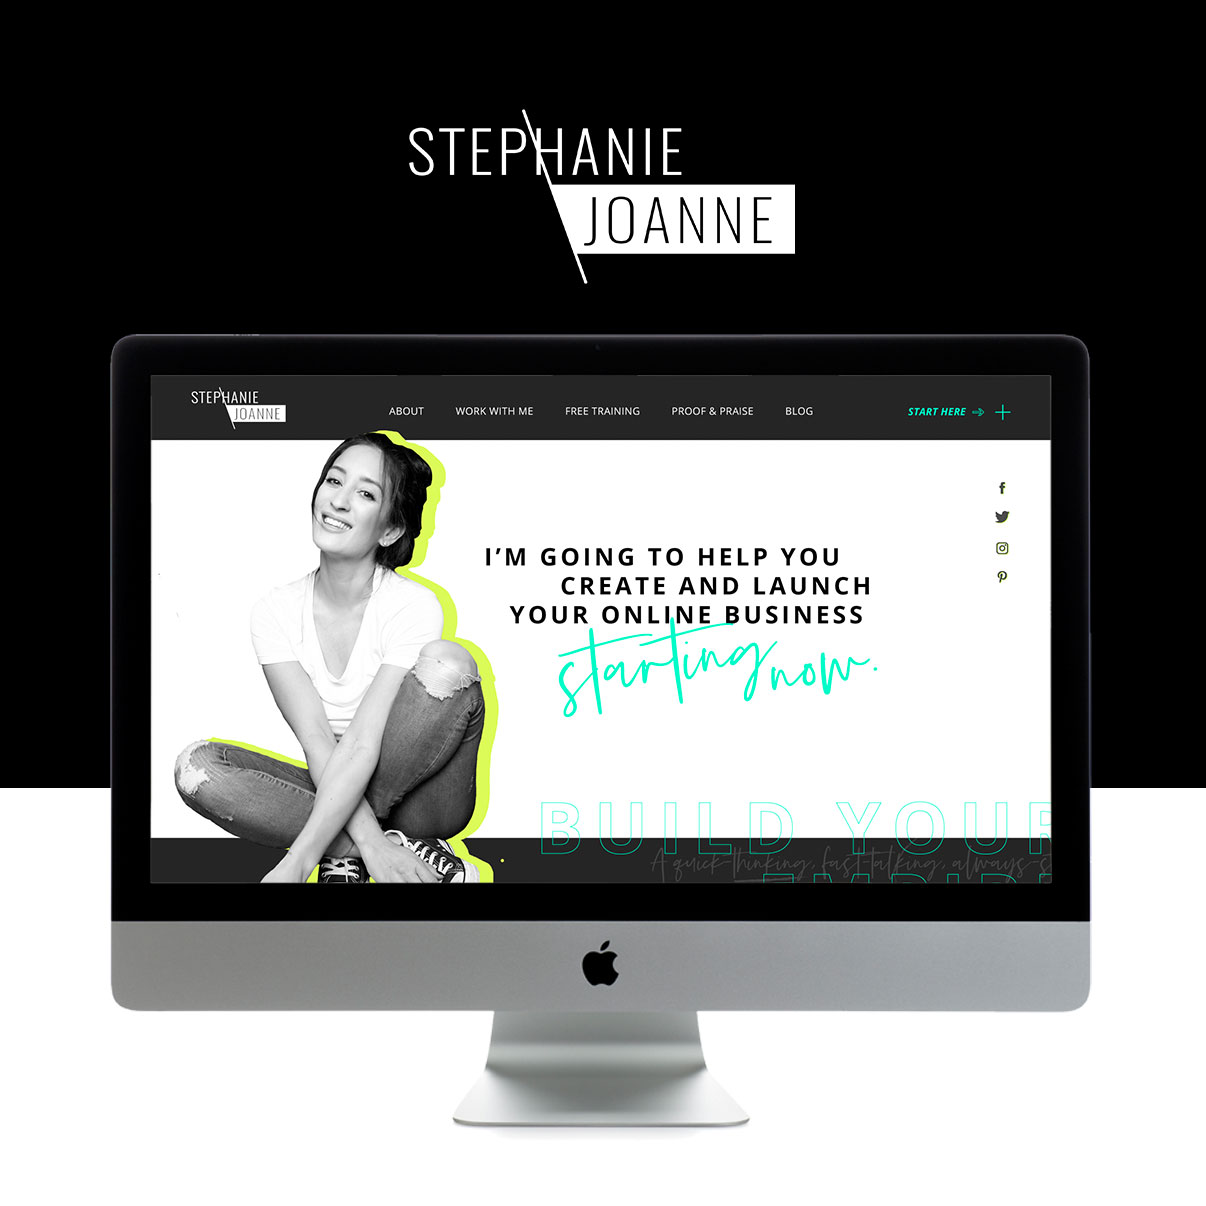 StephanieJoanne_websitelaunchtemplate2.jpg